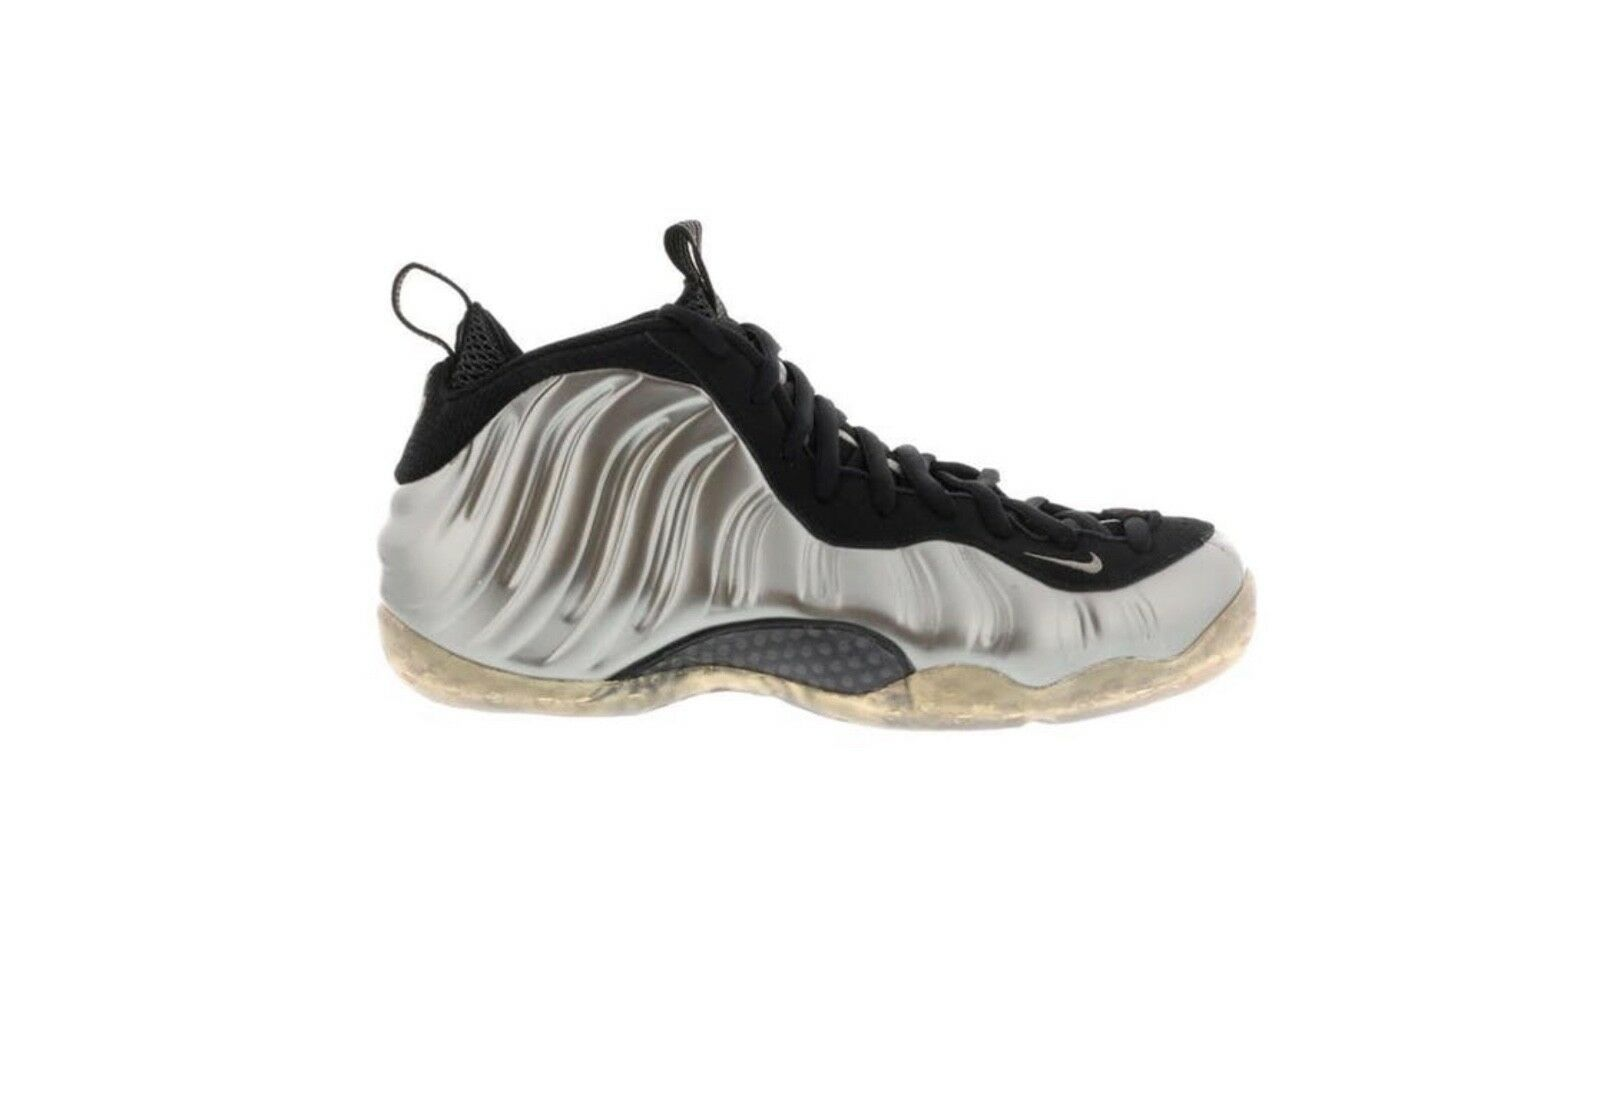 Nike Air 10 Foamposite One Pewter SIZE 10 Air DS nueva temporada 100% auténtico despacho venta dc0082